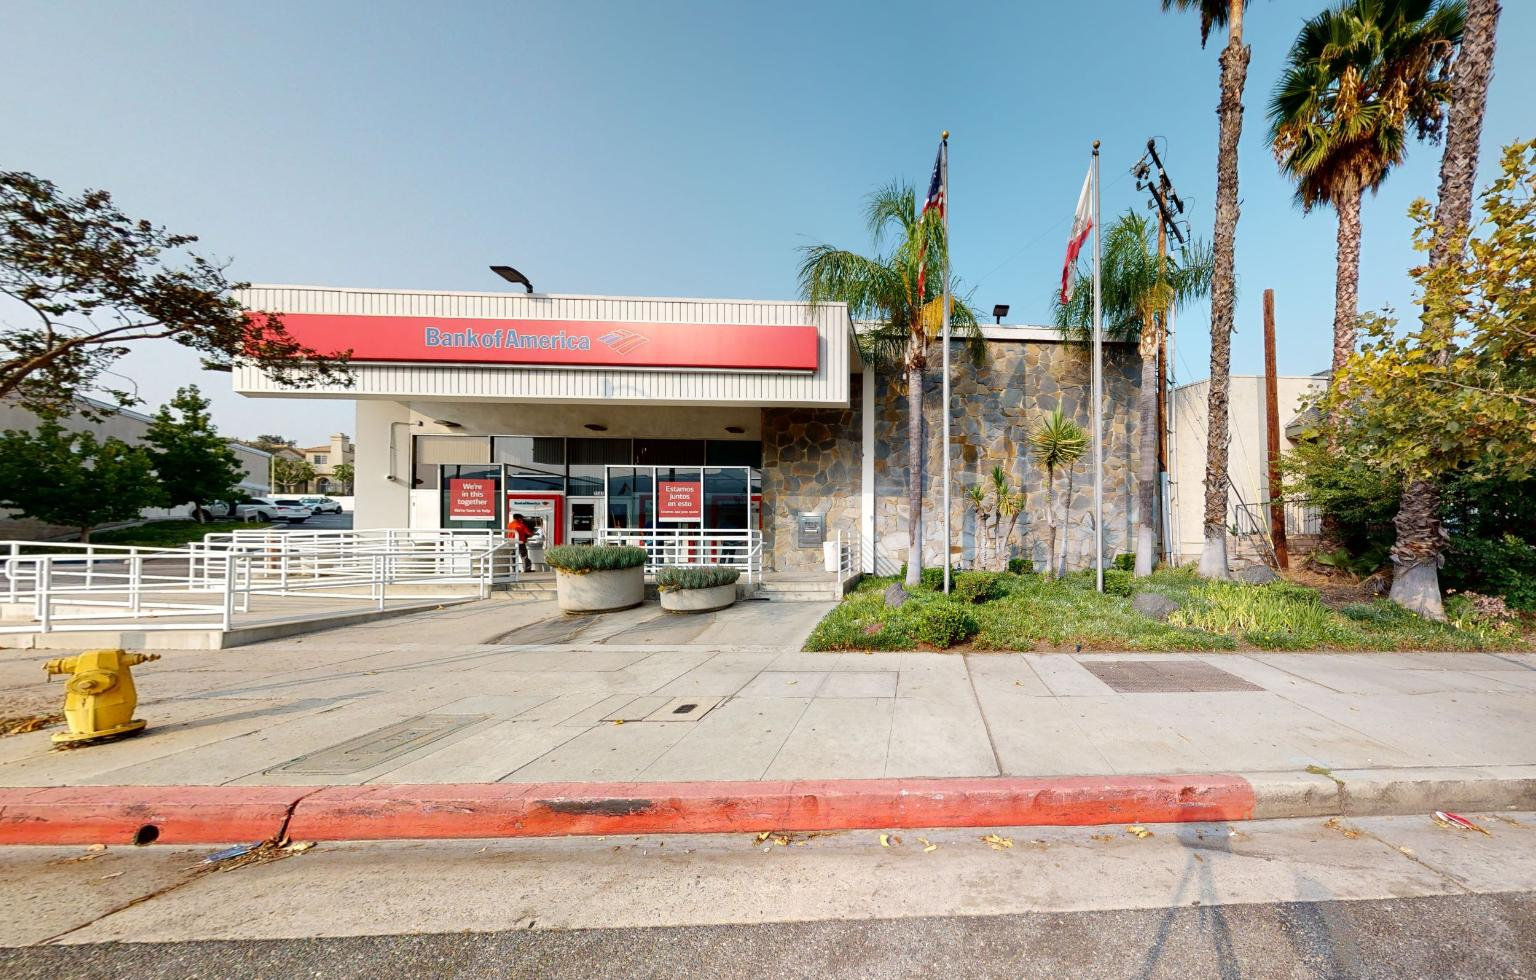 Bank of America financial center with walk-up ATM   3141 Foothill Blvd, La Crescenta, CA 91214